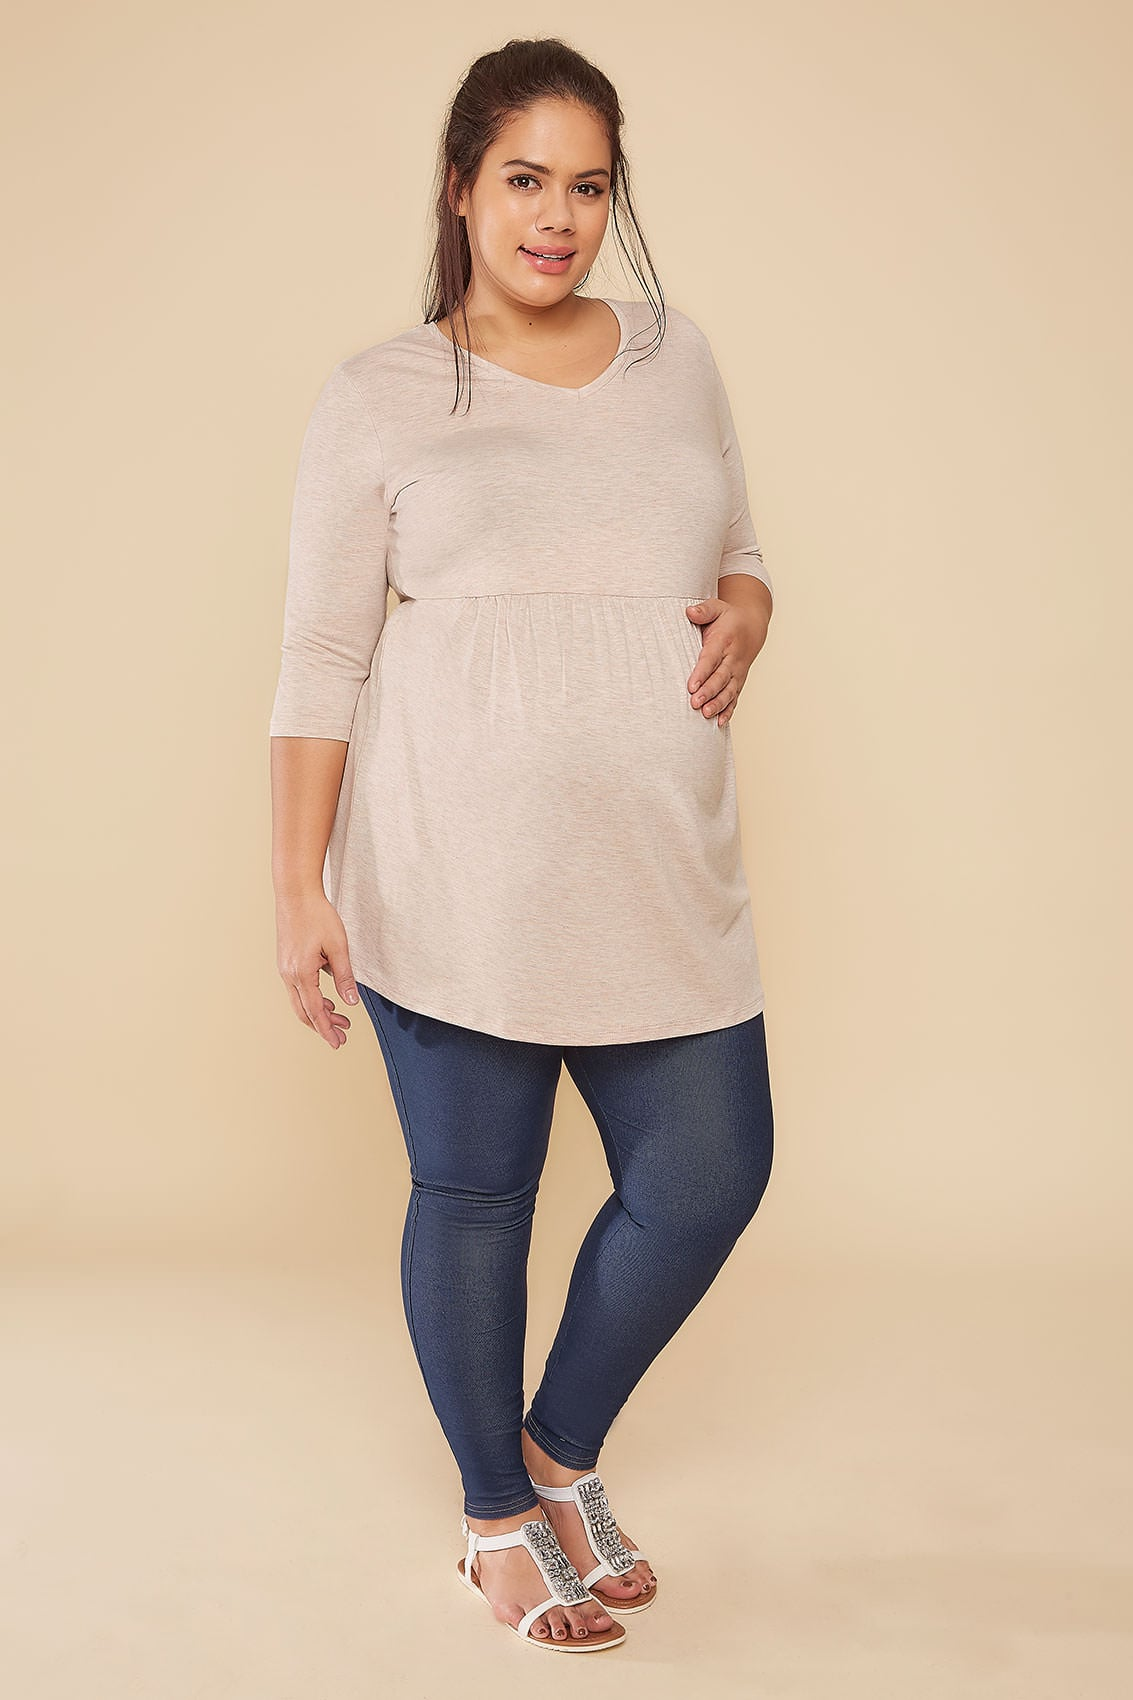 Rooms: BUMP IT UP MATERNITY Indigo Jeggings With Comfort Panel